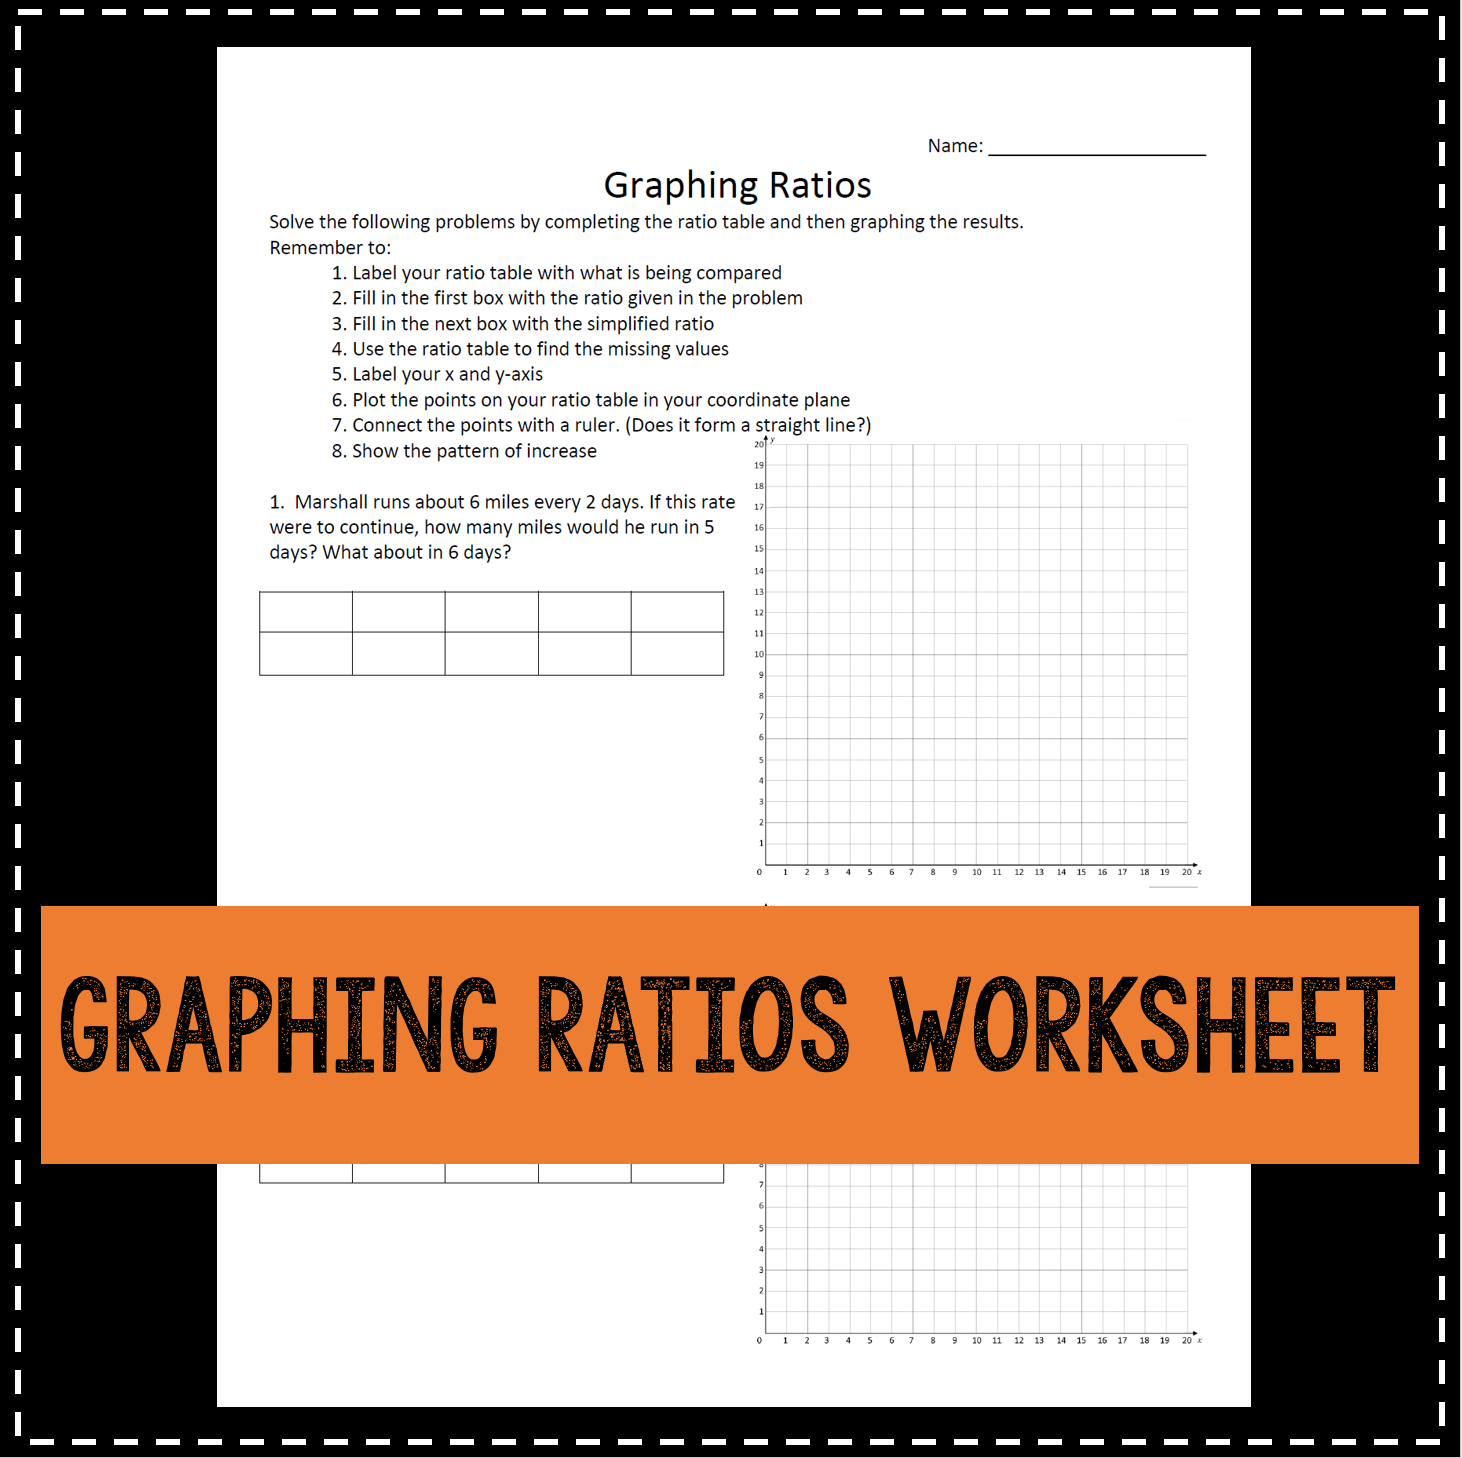 Graphing Ratios Practice Worksheet